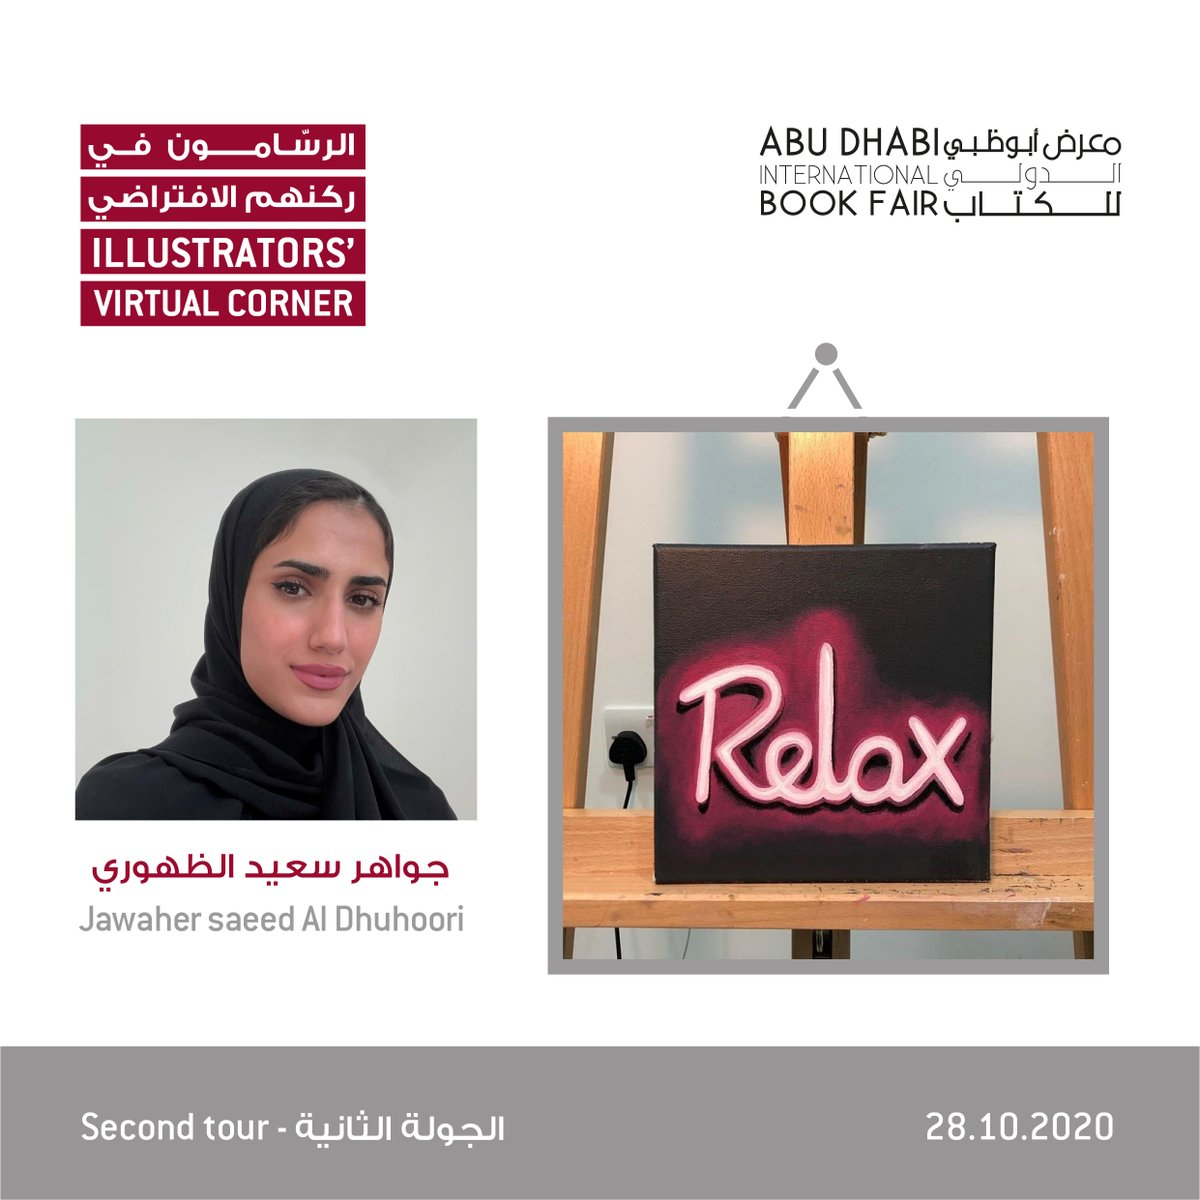 """Join us for the upcoming virtual sessions on Wednesday, 28 October, Entitled: """"illustrators' Virtual Corner 2"""". Stay tuned for the 2nd tour of the live broadcast at 6:00 pm on our YouTube channel  https://t.co/gogIb5DQtV  #ADIBF #Reading #Books #Culture #InAbuDhabi https://t.co/8L3h68WqzD"""